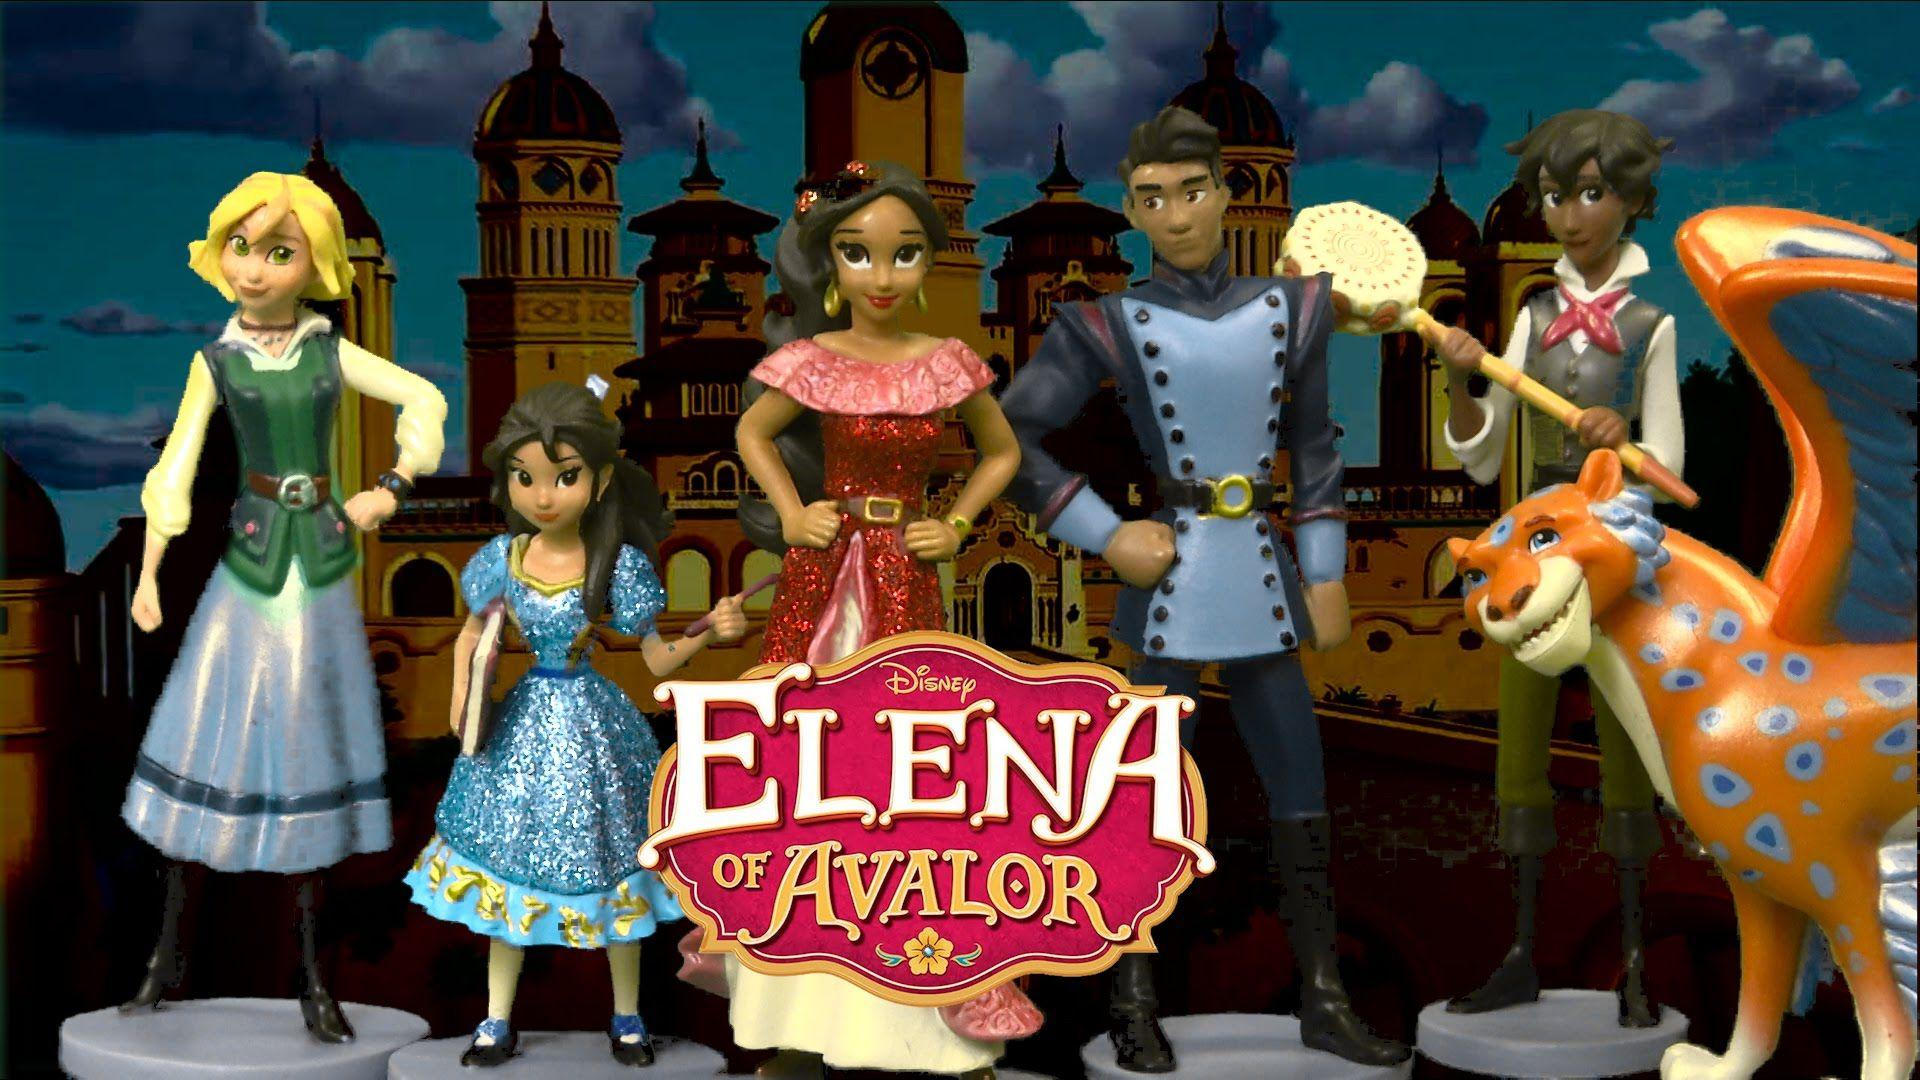 Elena of Avalor Figurine Playset from The Disney Store